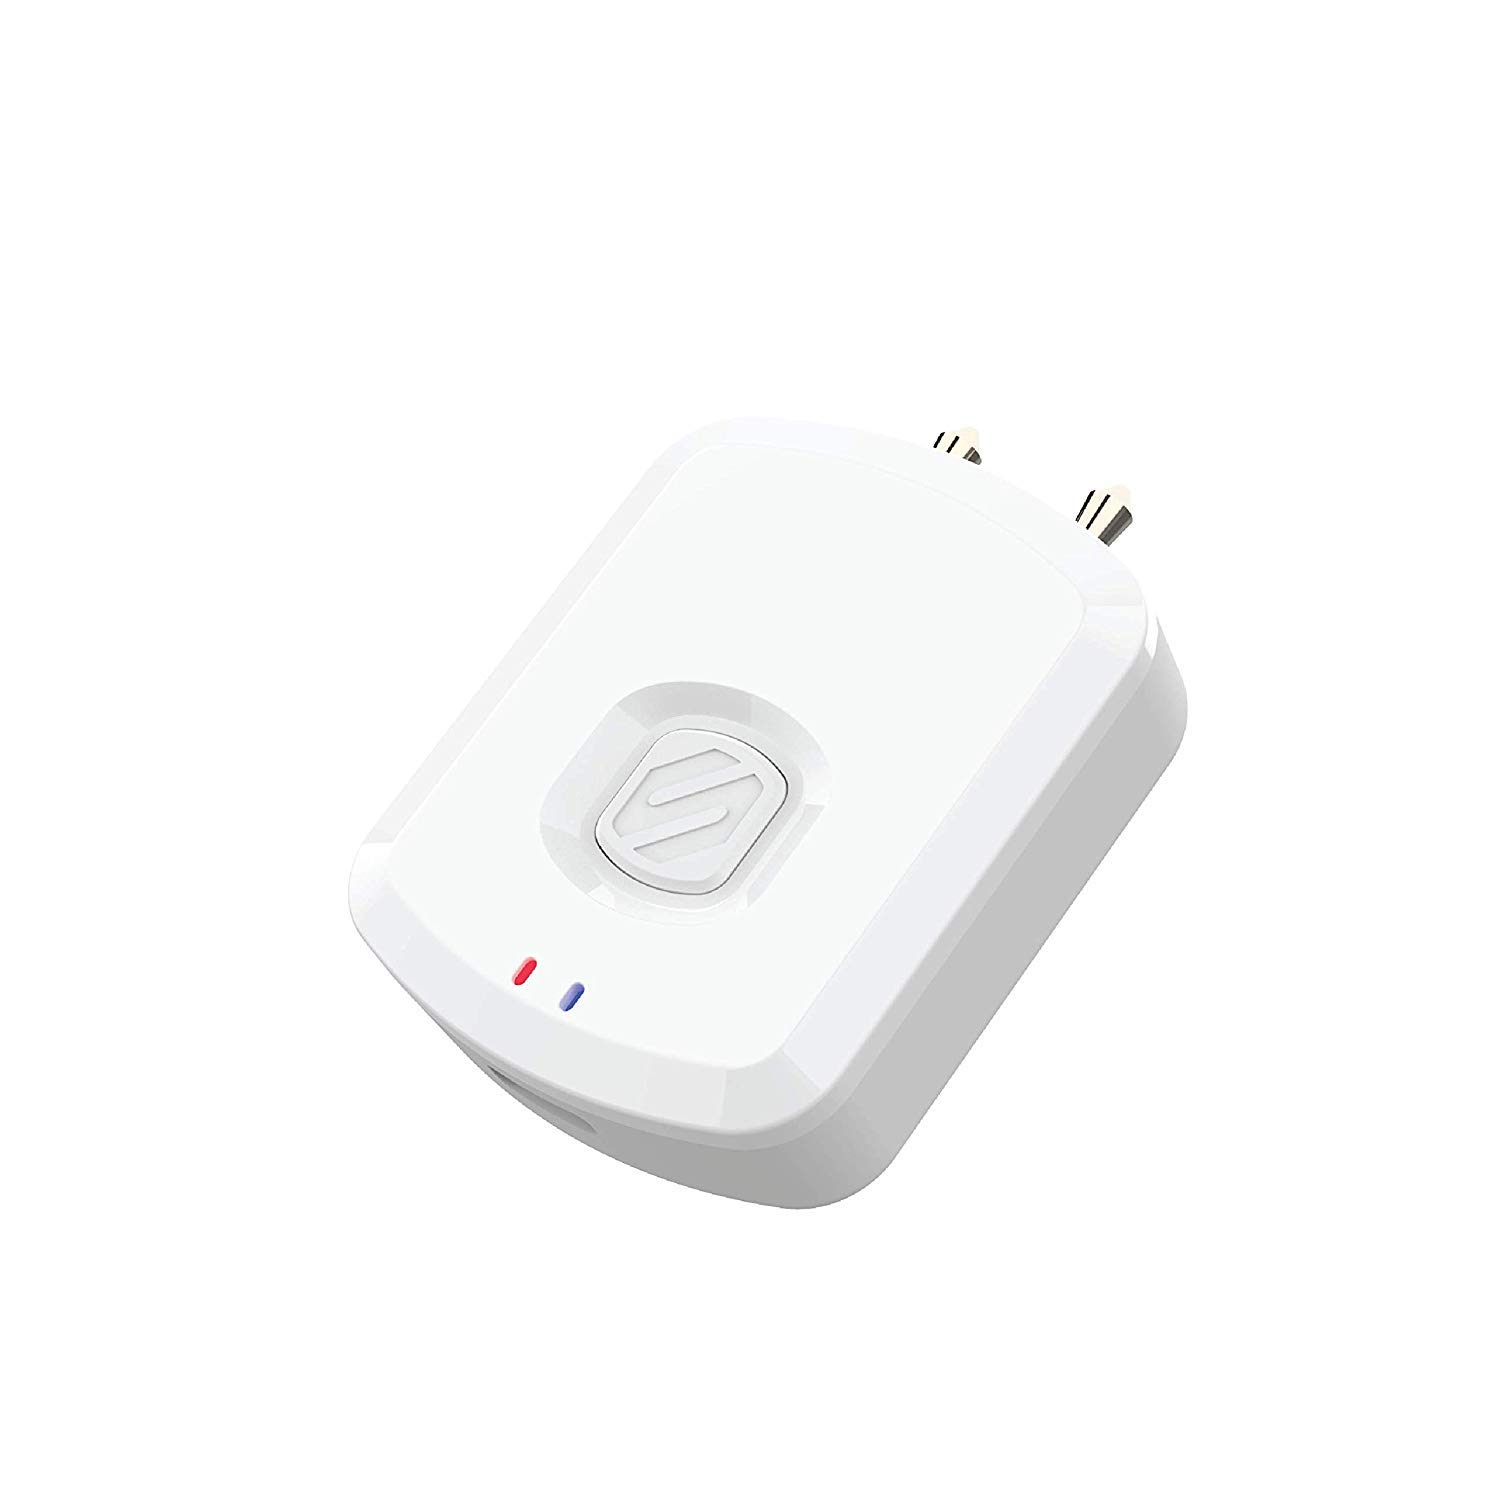 SCOSCHE BTTWT-SP FlyTunes Universal Portable Bluetooth 4.1 Wireless Audio Transmitter for Use with AirPods, Earbuds/Headphones, TV's and More - White by Scosche